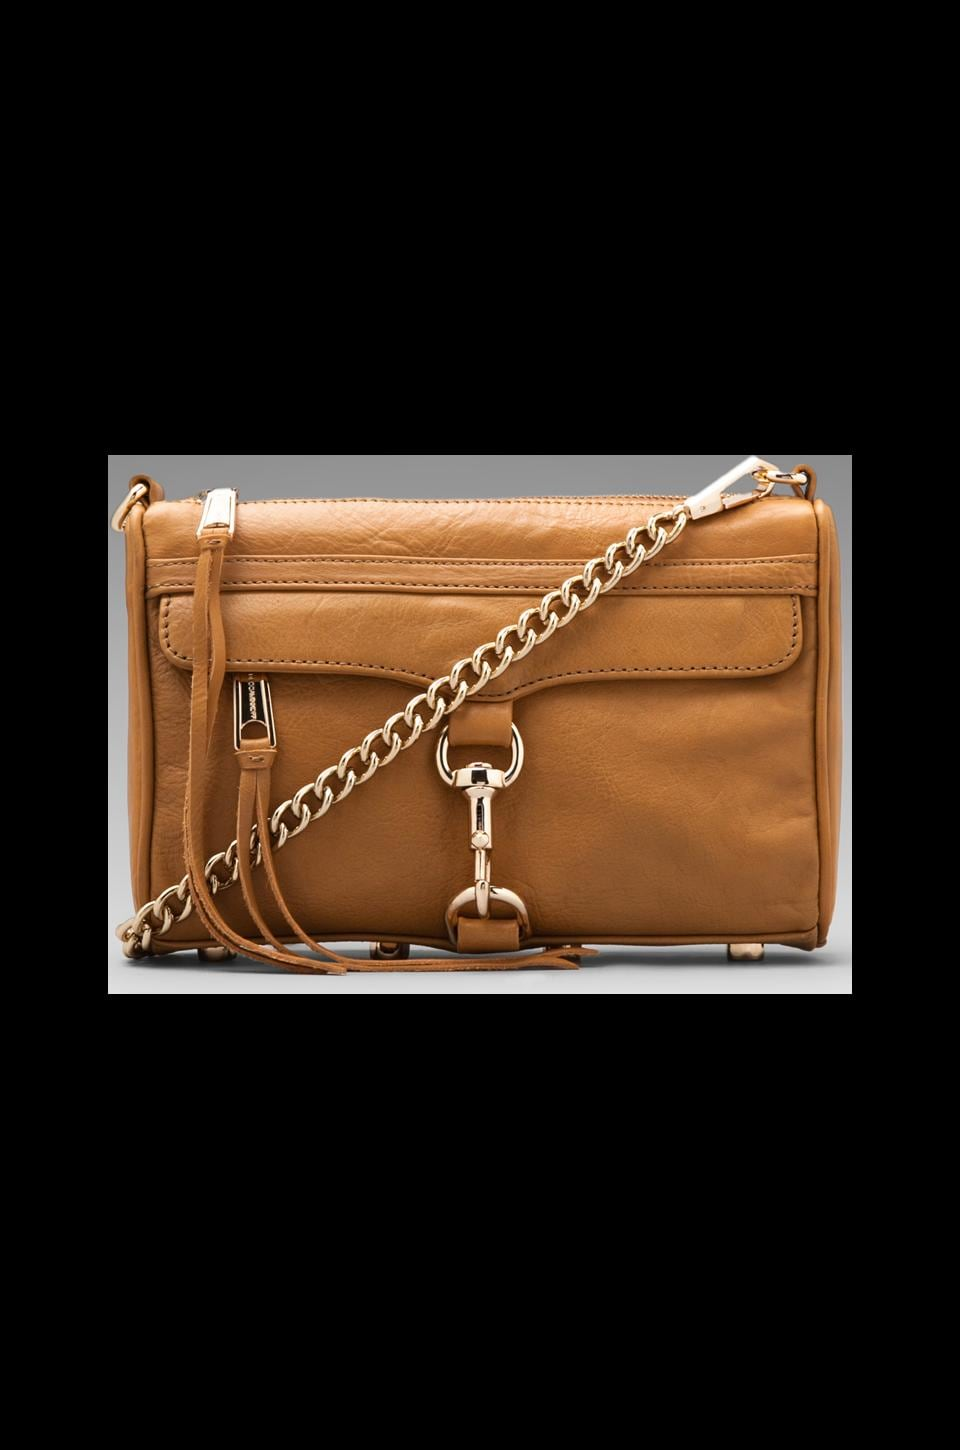 Rebecca Minkoff Mini Mac in Tawny